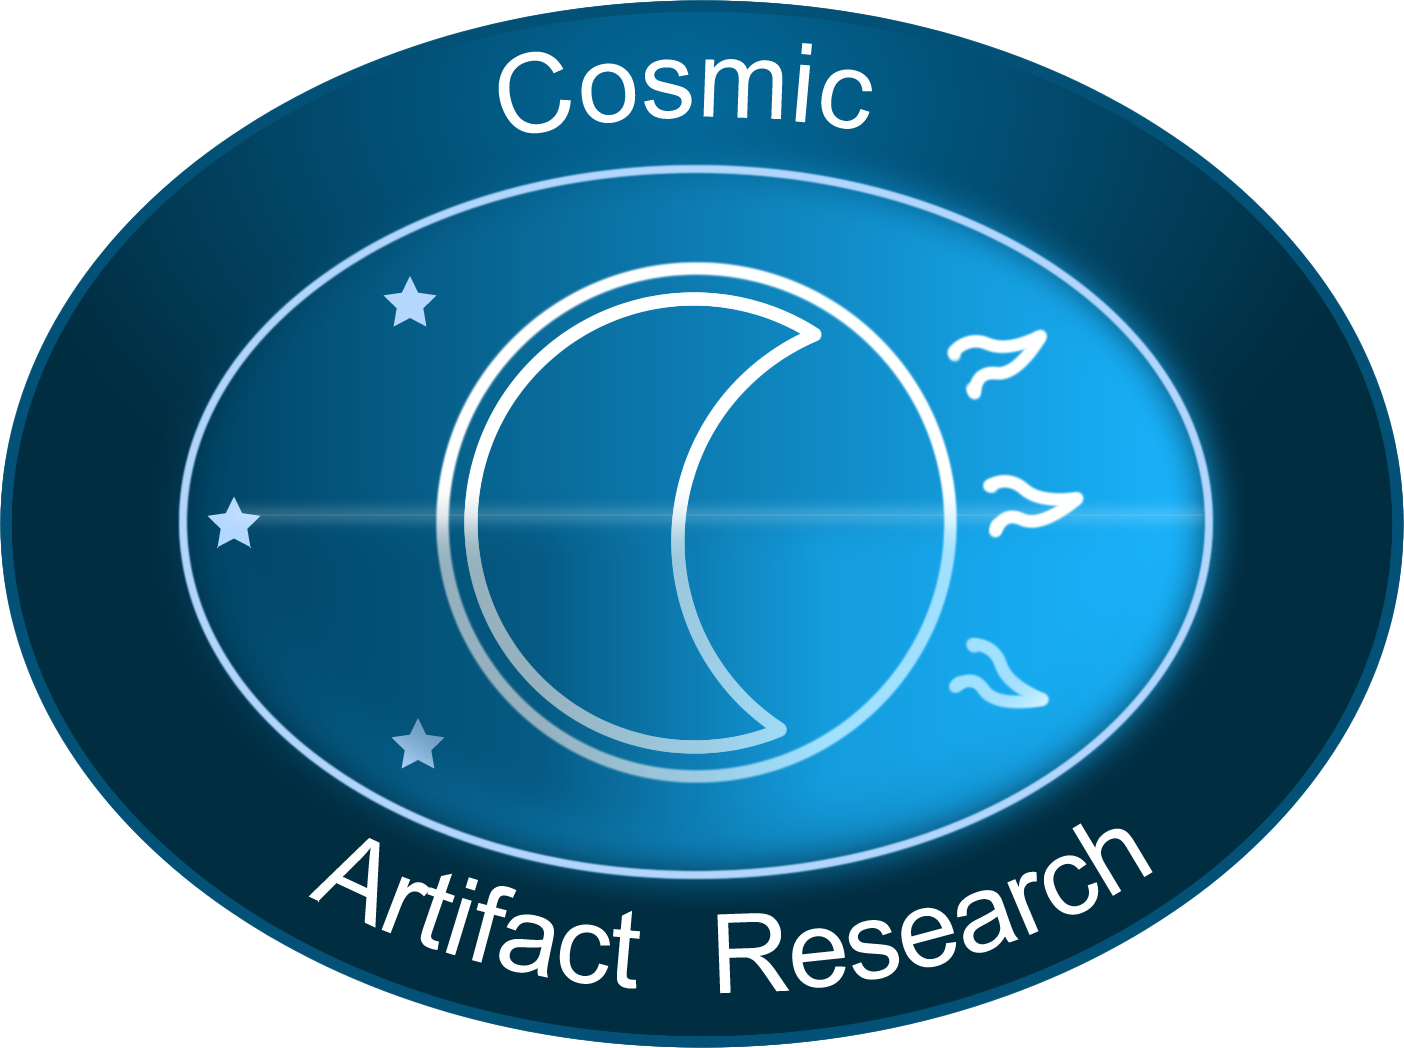 Cosmic Artifact Research